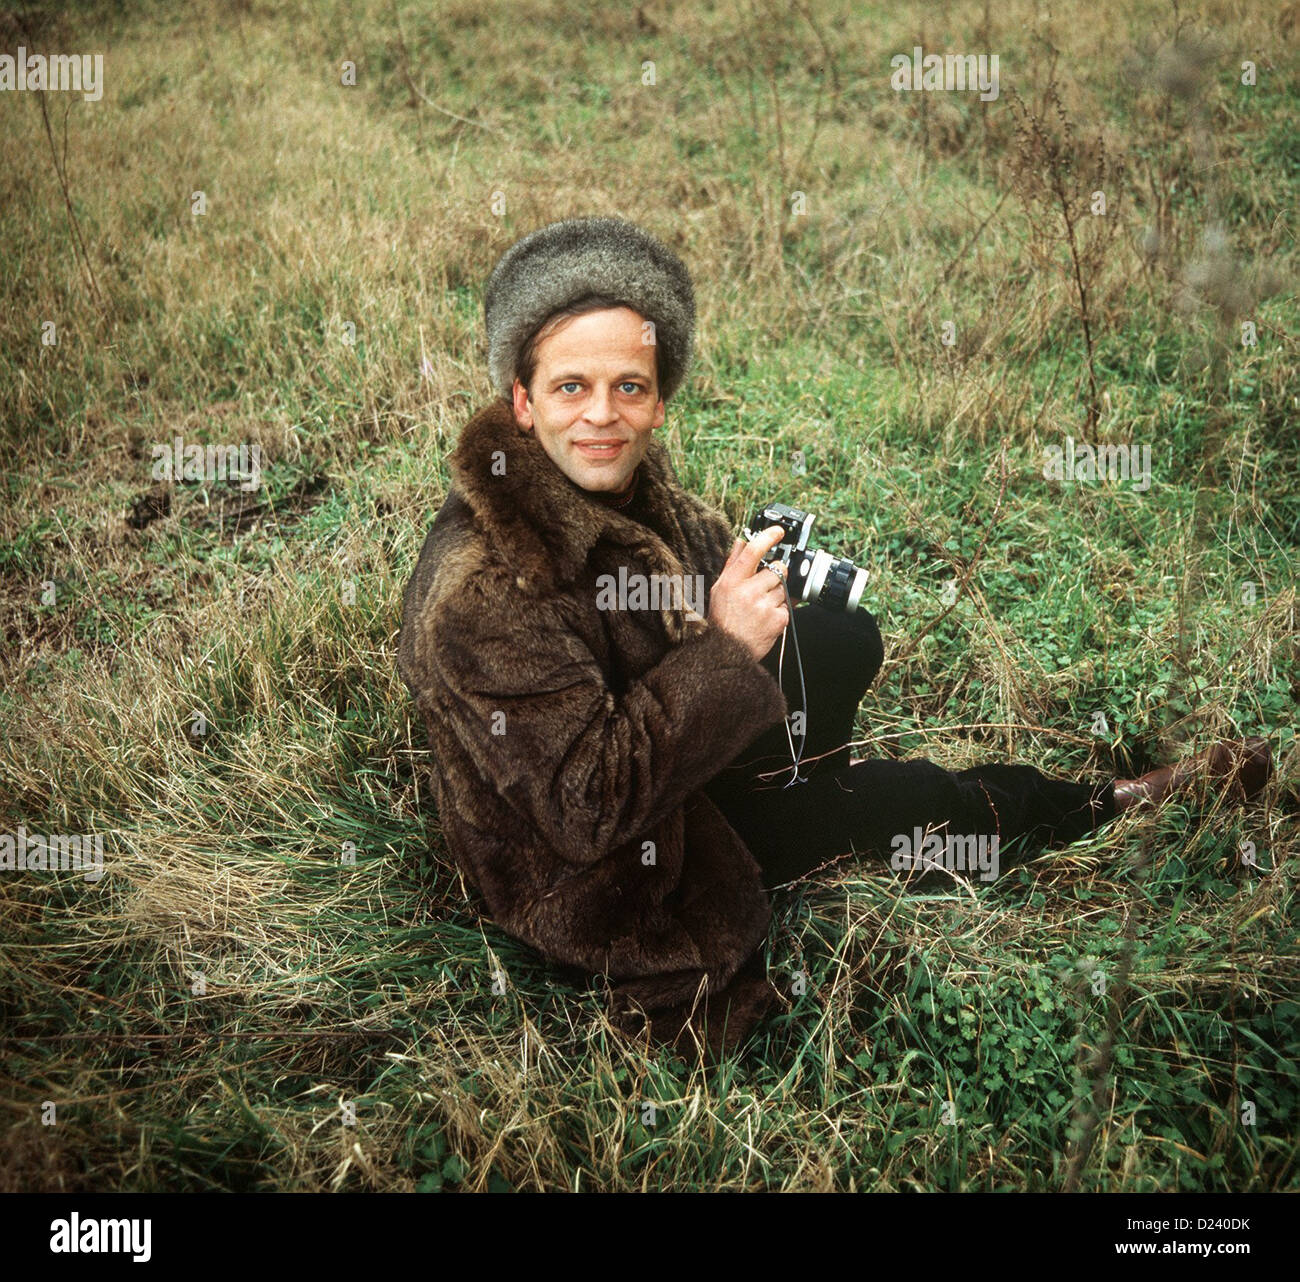 (dpa files) - German actor Klaus Kinski sits in the grass, holding a camera, 2 September 1969. An 'enfant terrible' of the film industry, his films include 'Aguirre, der Zorn Gottes' ('Aguirre: The Wrath of God') and 'Nosferatu: Phantom der Nacht' ('Nosferatu the Vampire'). Kinski was born on 18 October 1926 in Zoppot/Danzig, Germany (now Sopot/Gdansk, Poland) under the name of Nikolaus Guenther Nakszynski and died on 23 November 1991 in Lagunitas, California, of a heart attack. Stock Photo